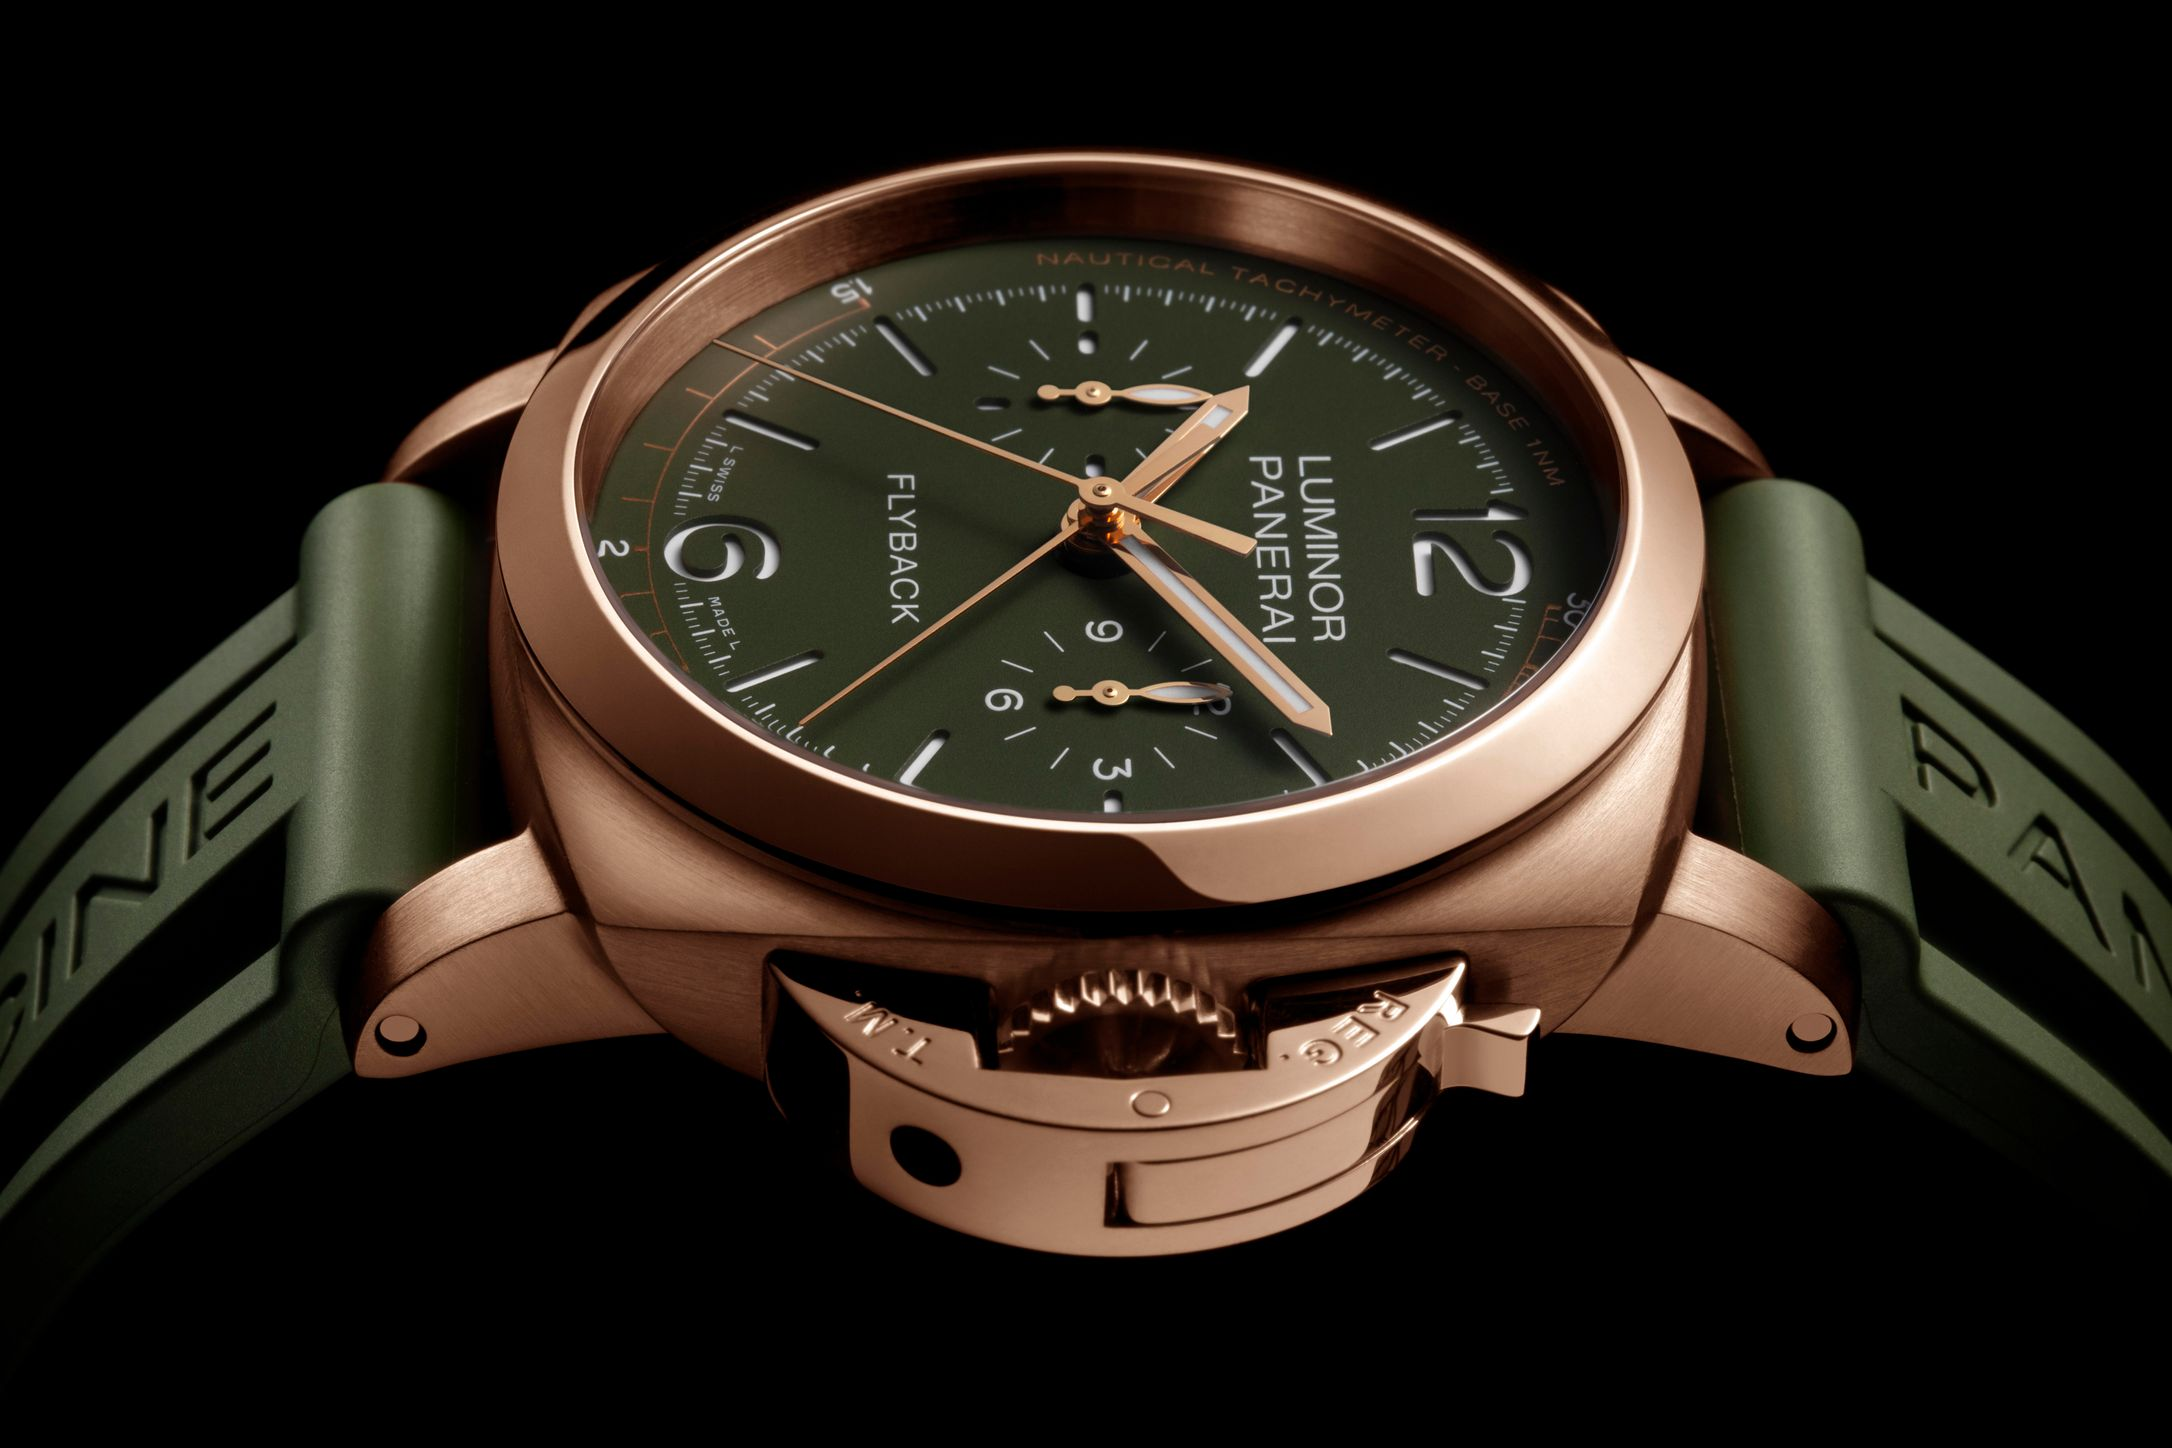 PANERAI LUMINOR MS DHONI EDITION PAM 1057 - Panerai plays the helicopter shot with MS Dhoni special edition watches